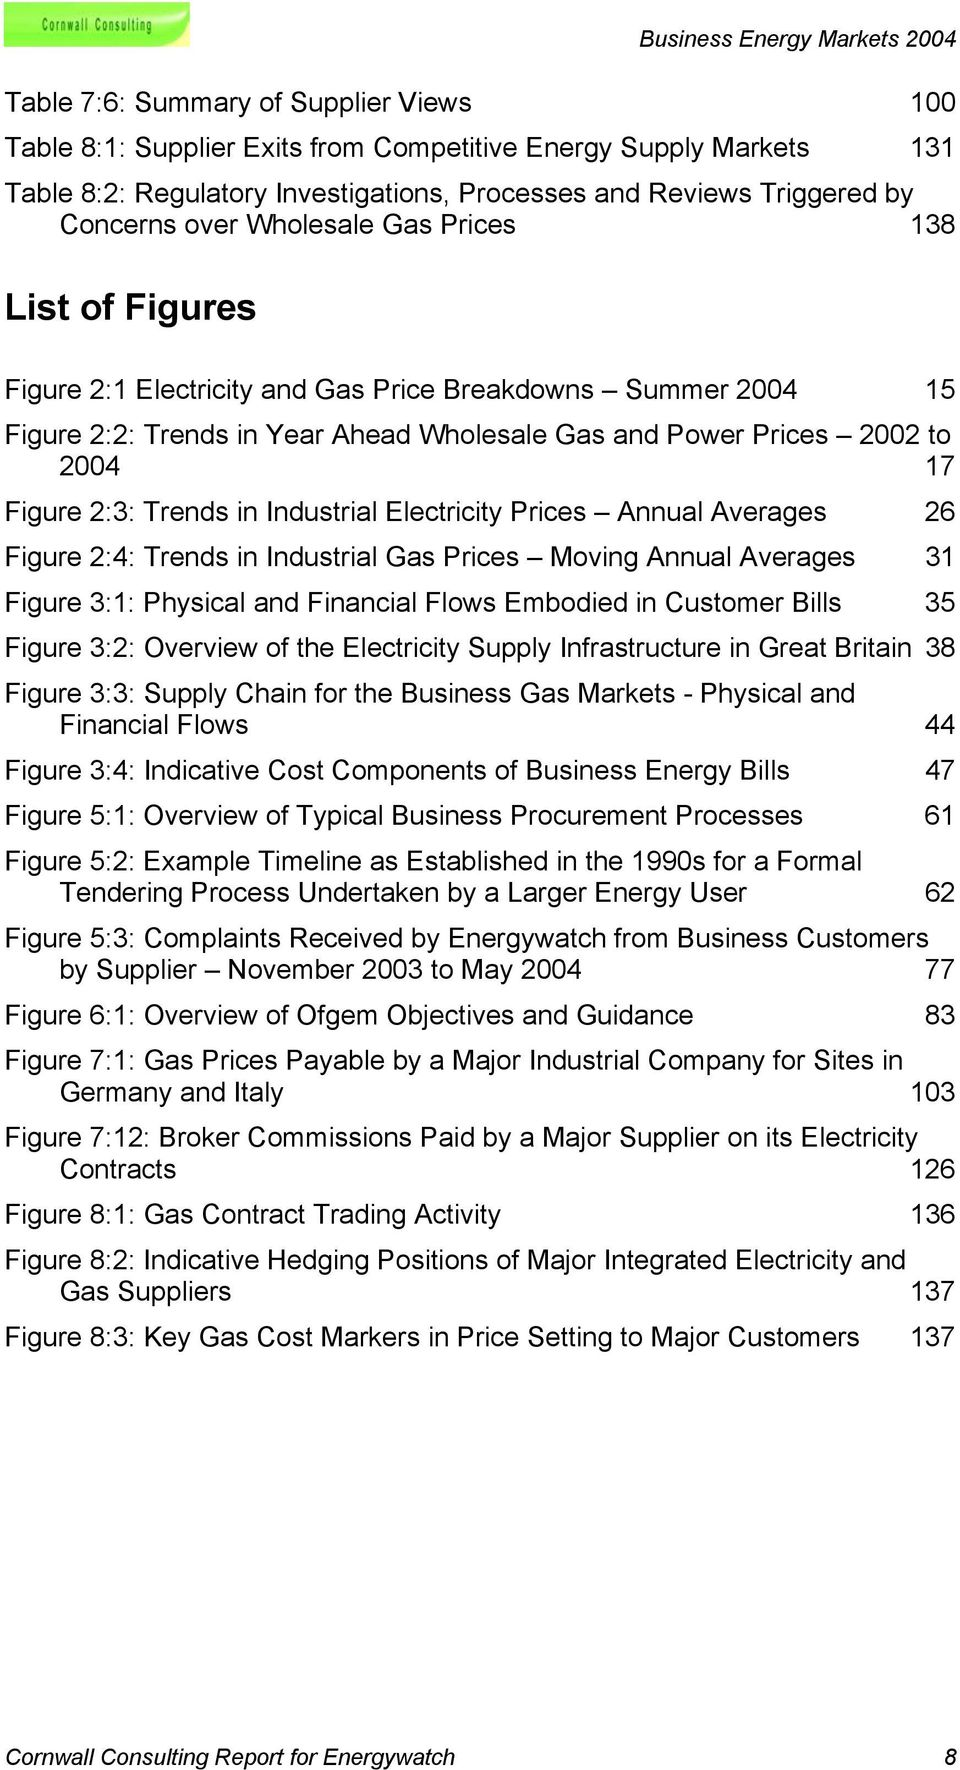 Trends in Industrial Electricity Prices Annual Averages 26 Figure 2:4: Trends in Industrial Gas Prices Moving Annual Averages 31 Figure 3:1: Physical and Financial Flows Embodied in Customer Bills 35